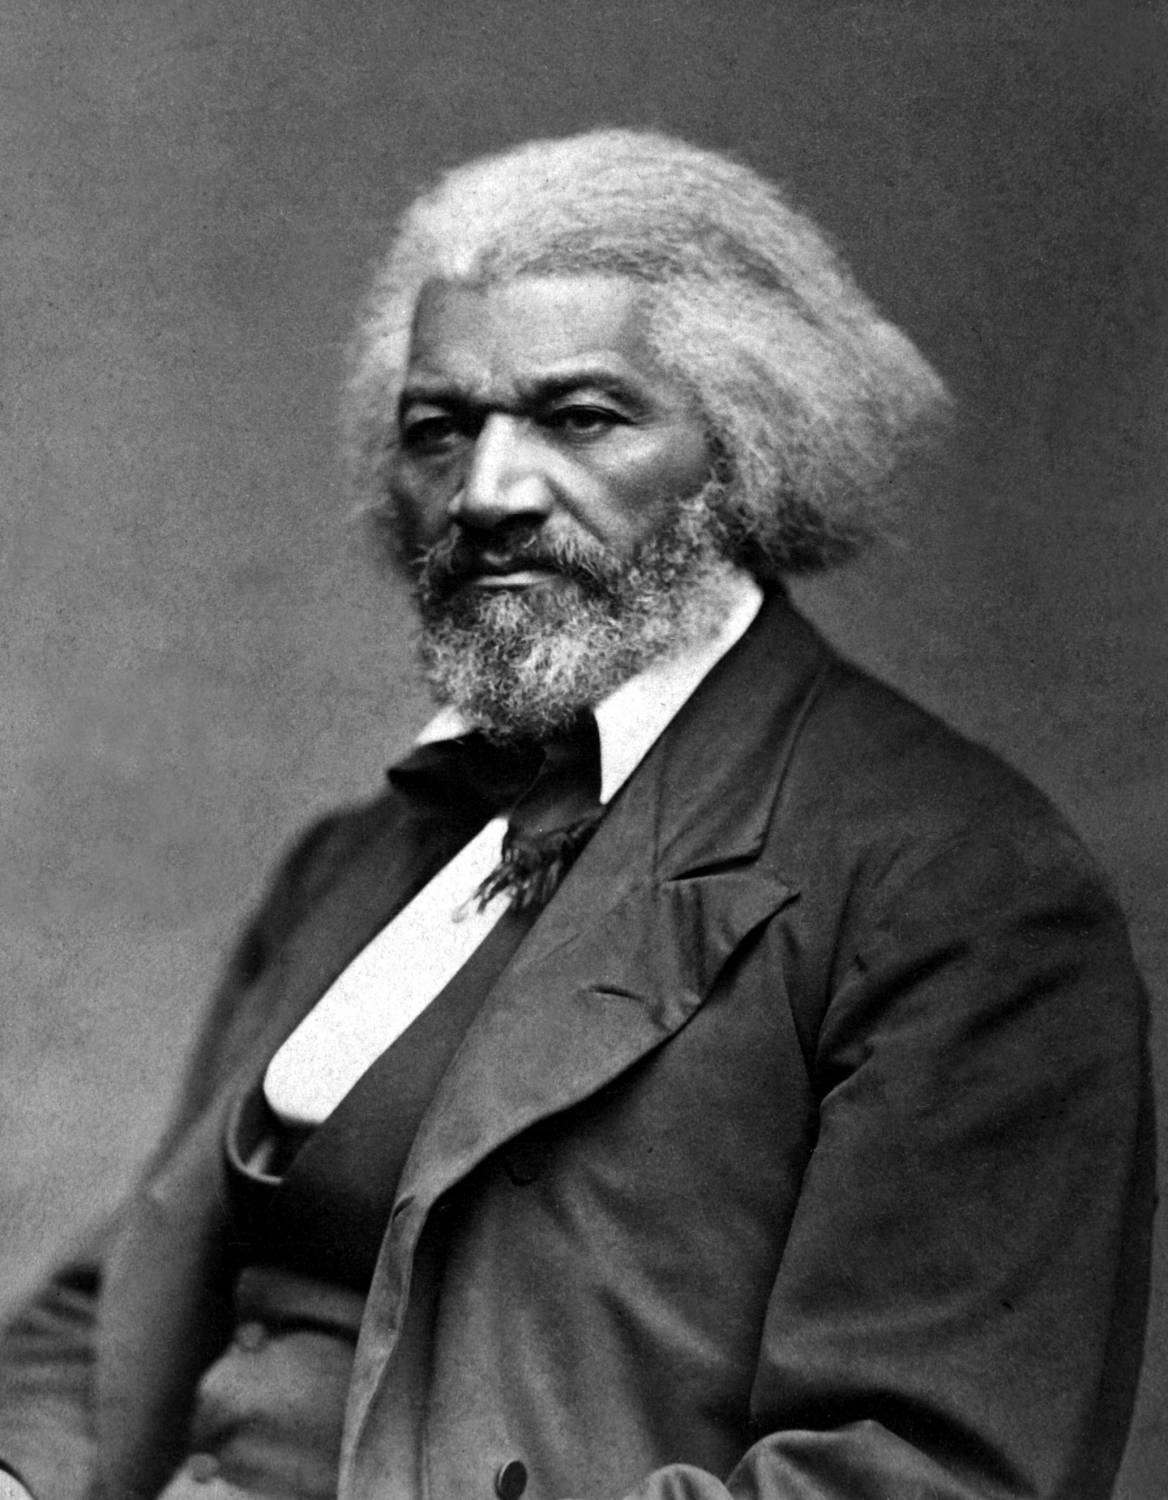 frederick douglass a slaveholder or a On oct 21, 1848, burritt's christian citizen reprints former slave frederick douglass's letter to his old master after it first appeared in the north star.